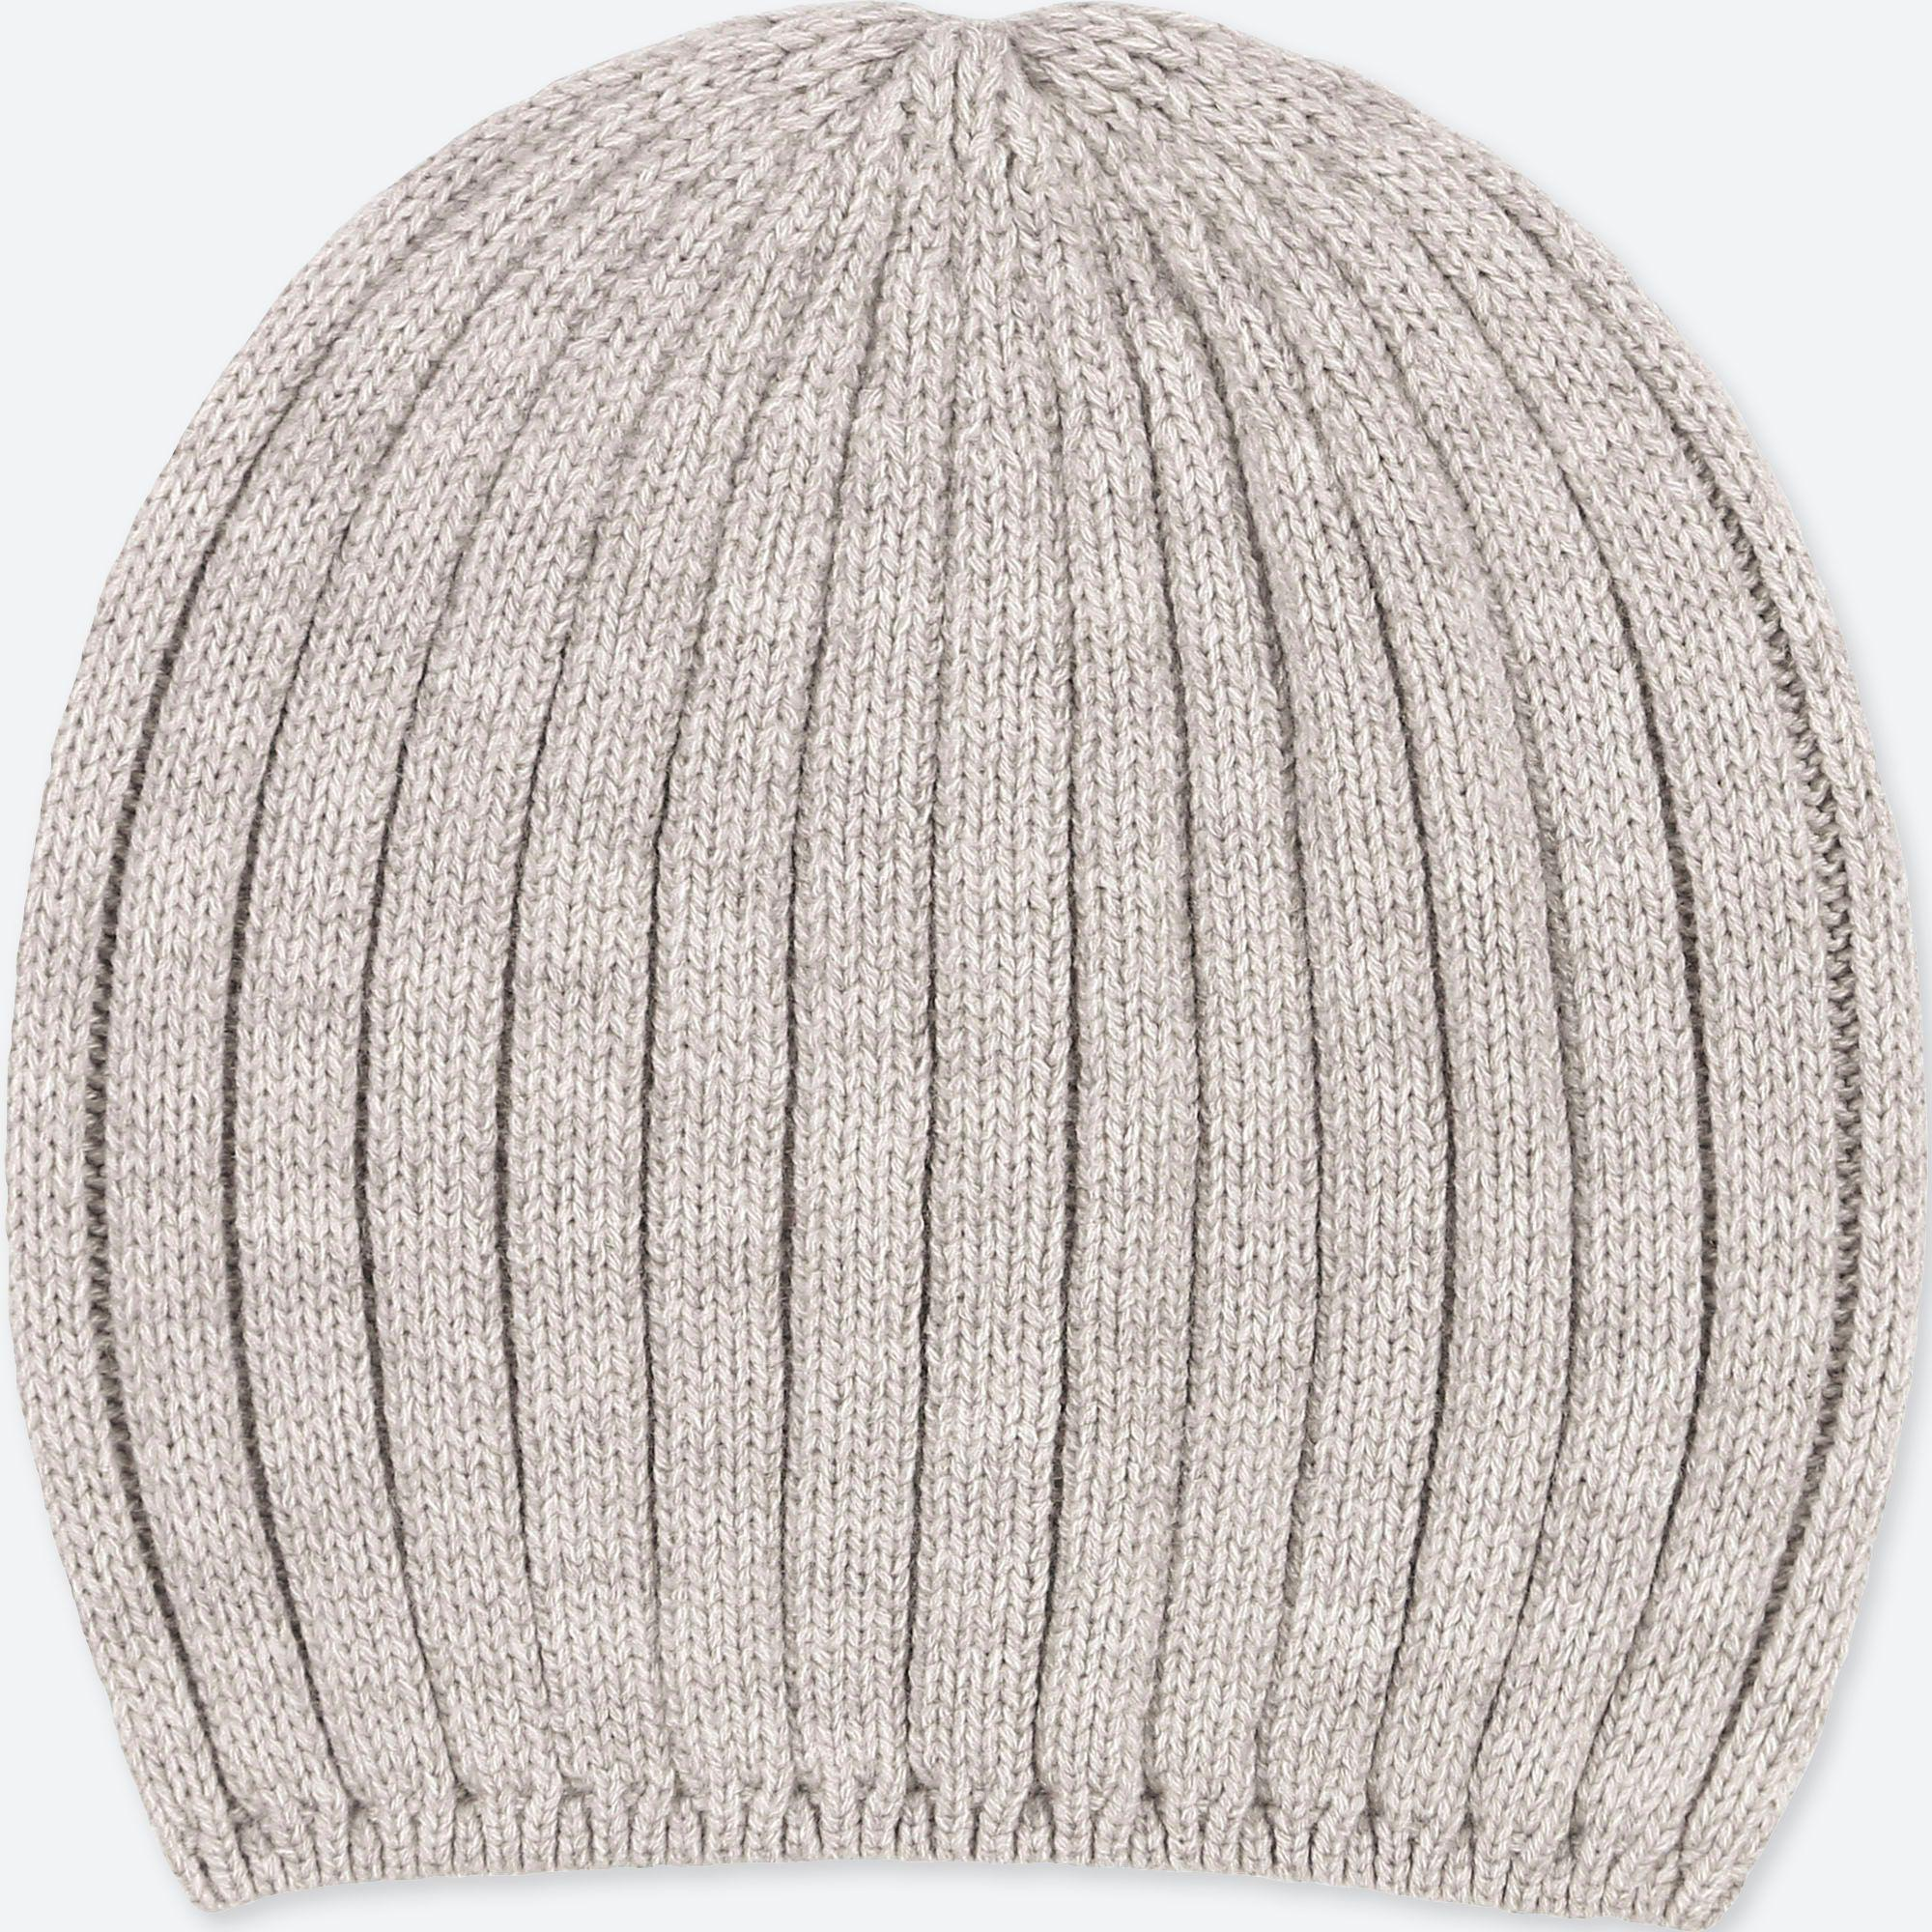 92acb98428d85 Uniqlo Heattech Knitted Beanie Hat in Gray - Lyst